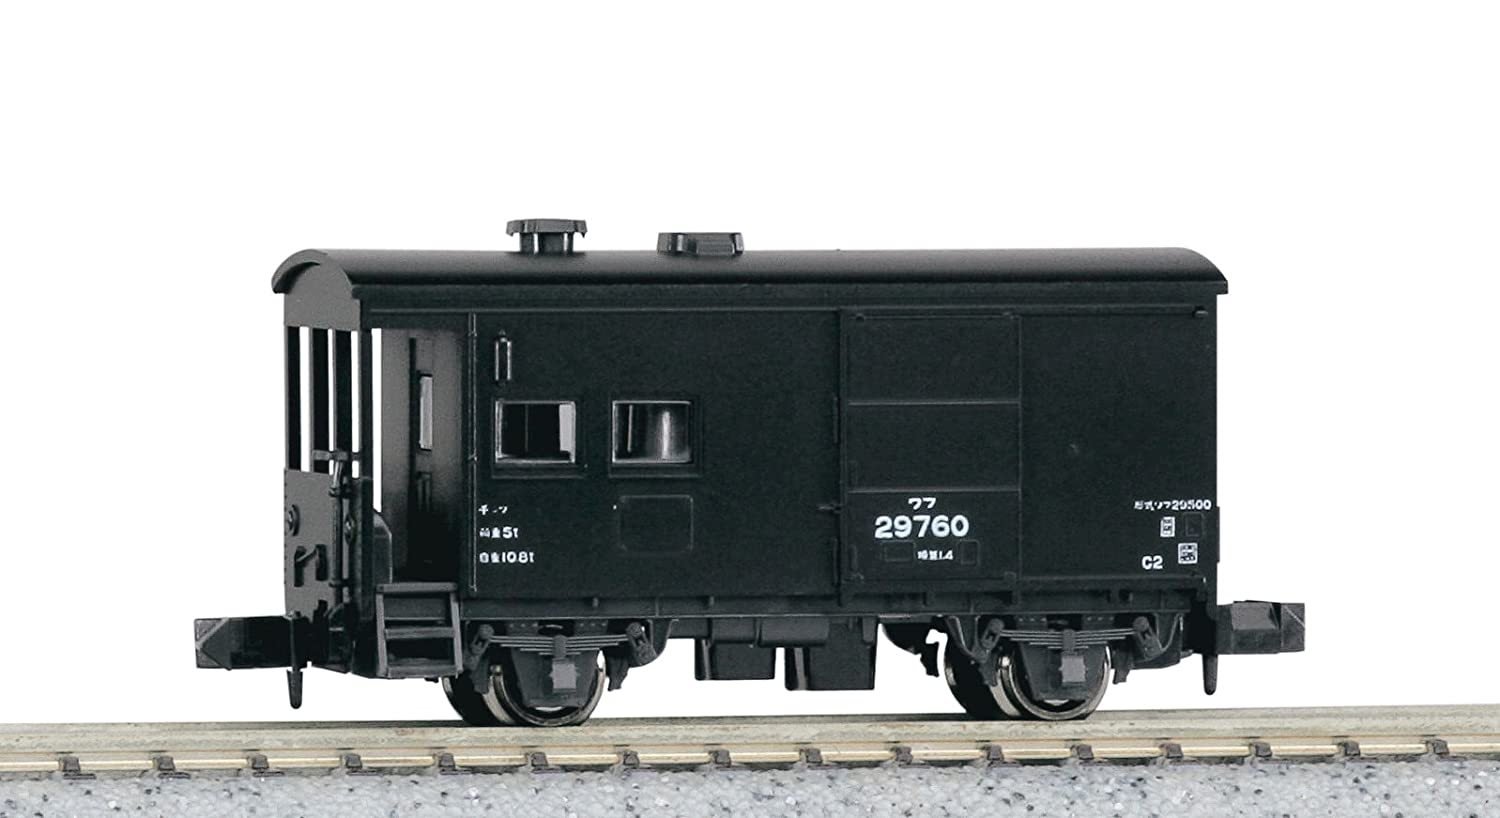 Kato 8030 Wafu 29500 Brake Van With Working Tail Light (japan import) Kato USA Inc.